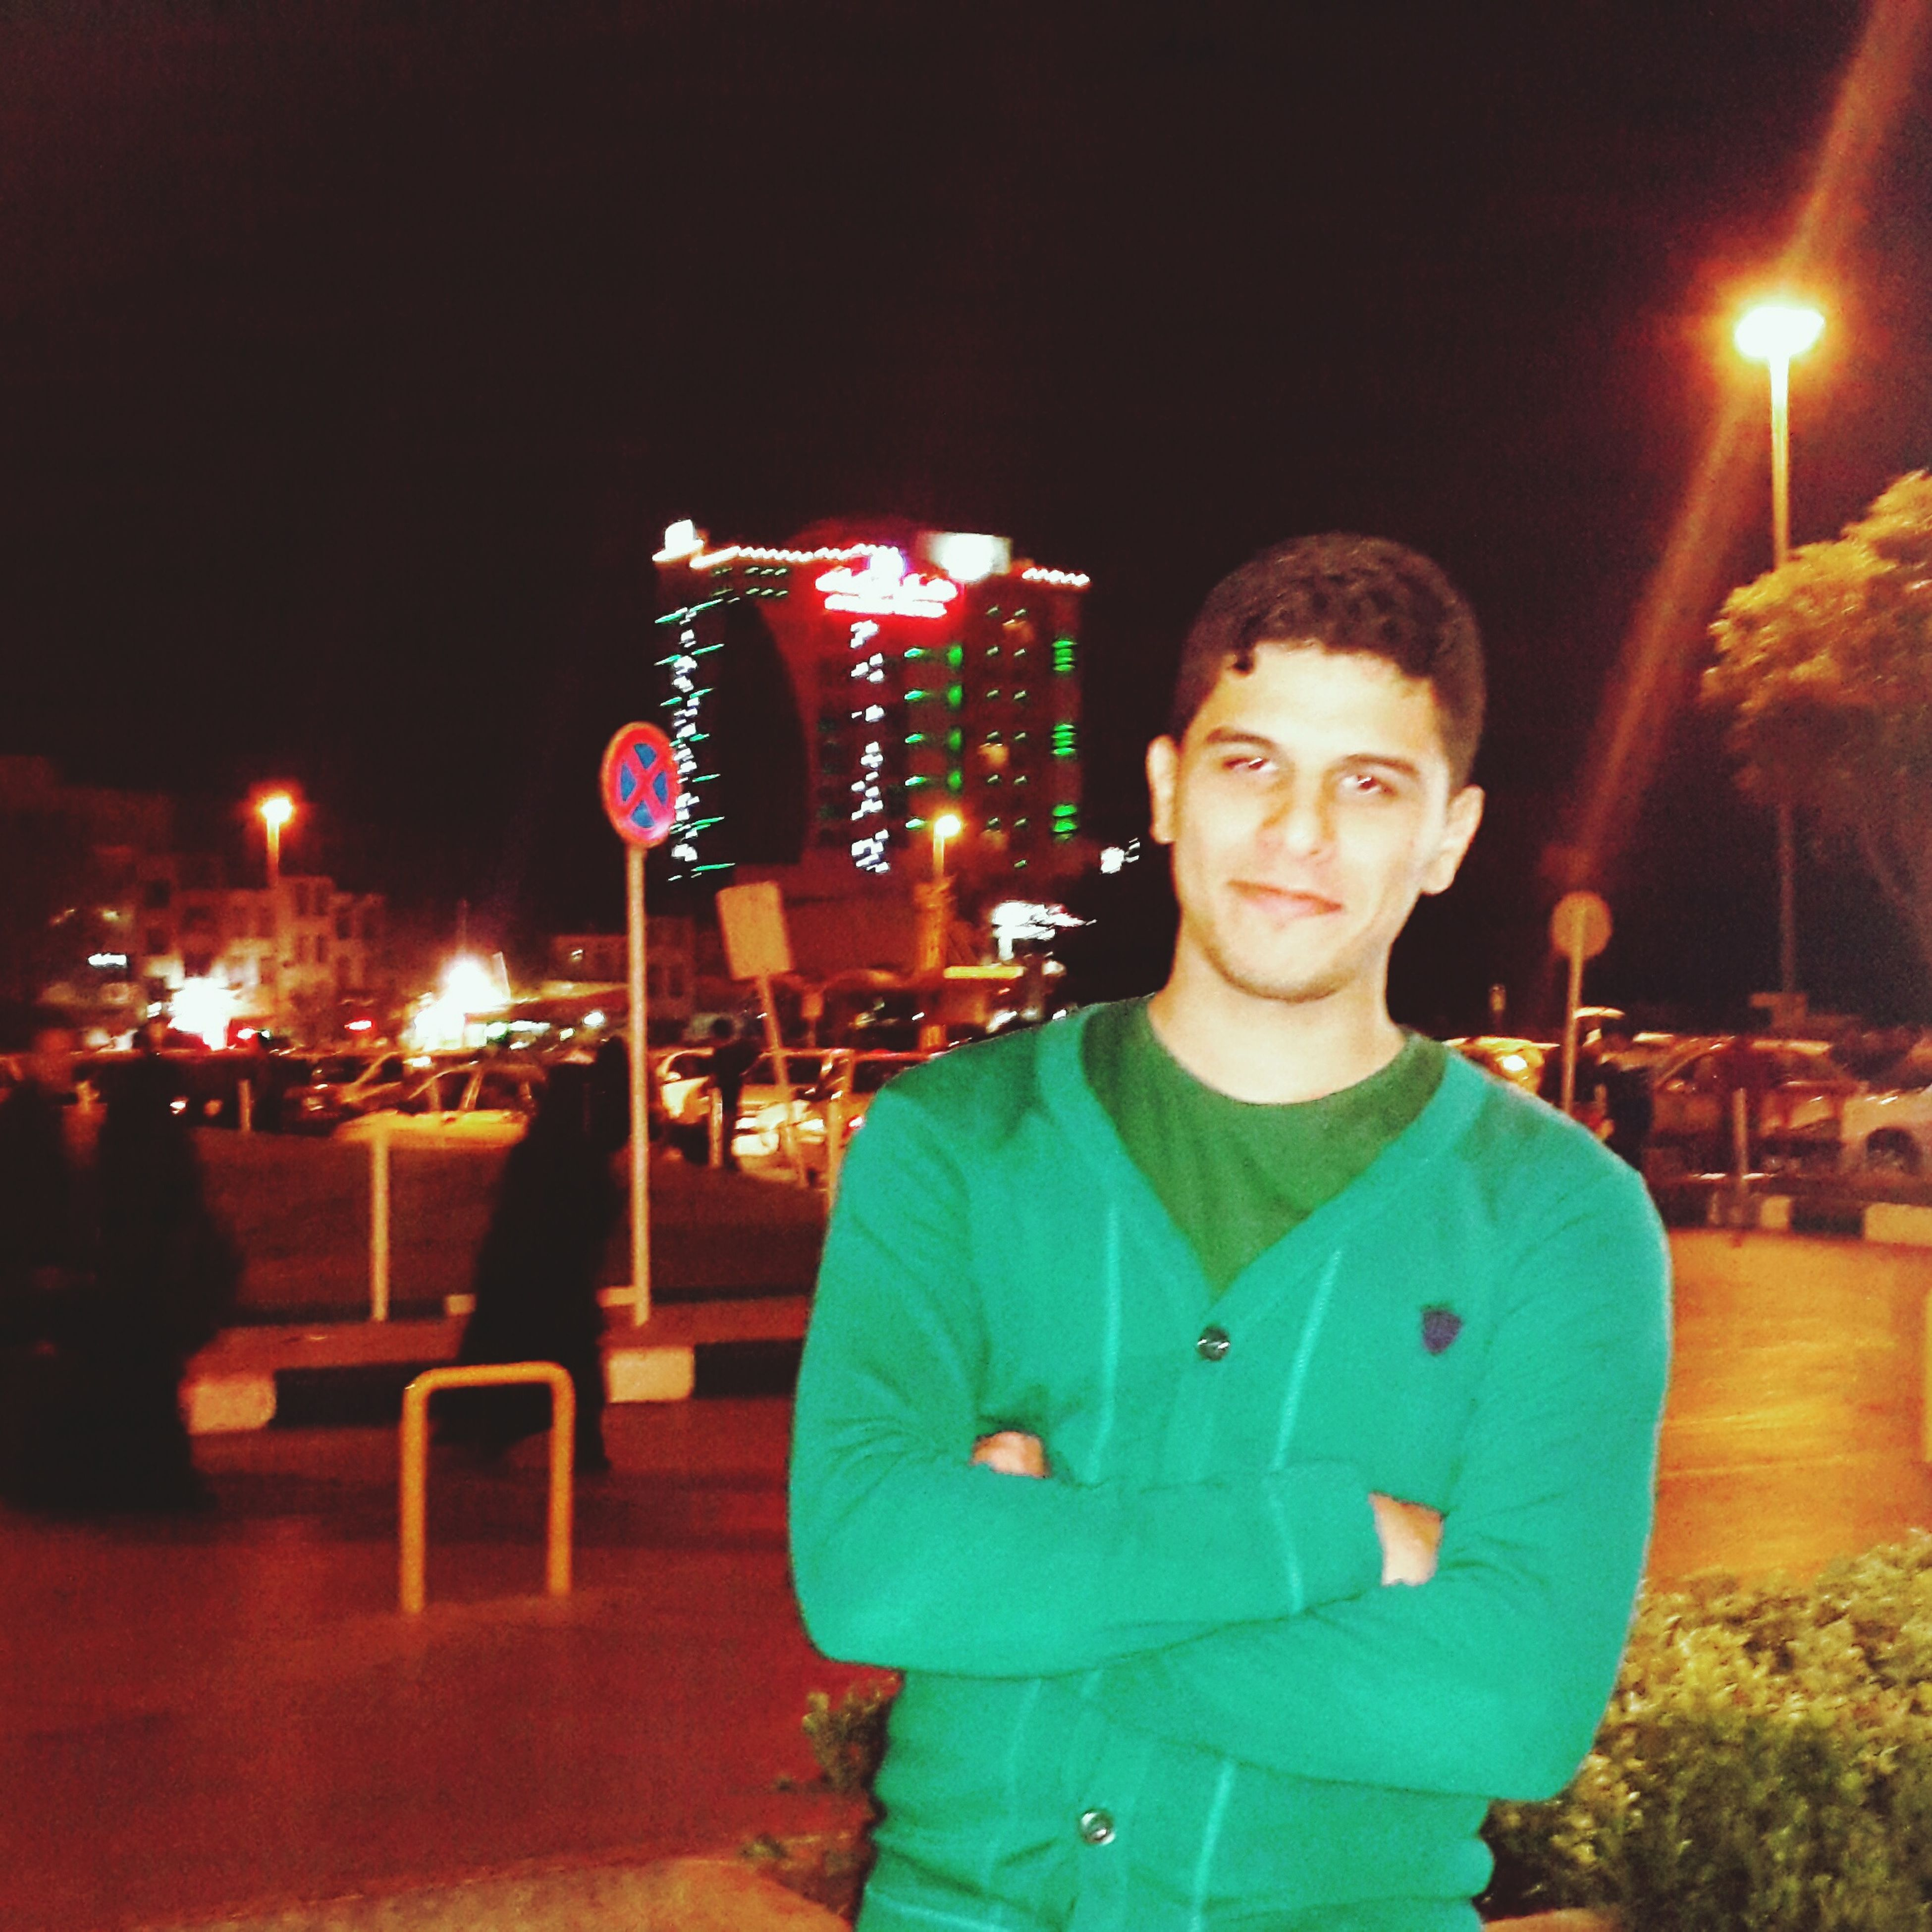 illuminated, night, lifestyles, leisure activity, casual clothing, lighting equipment, standing, front view, celebration, sitting, waist up, arts culture and entertainment, looking at camera, portrait, three quarter length, person, incidental people, holding